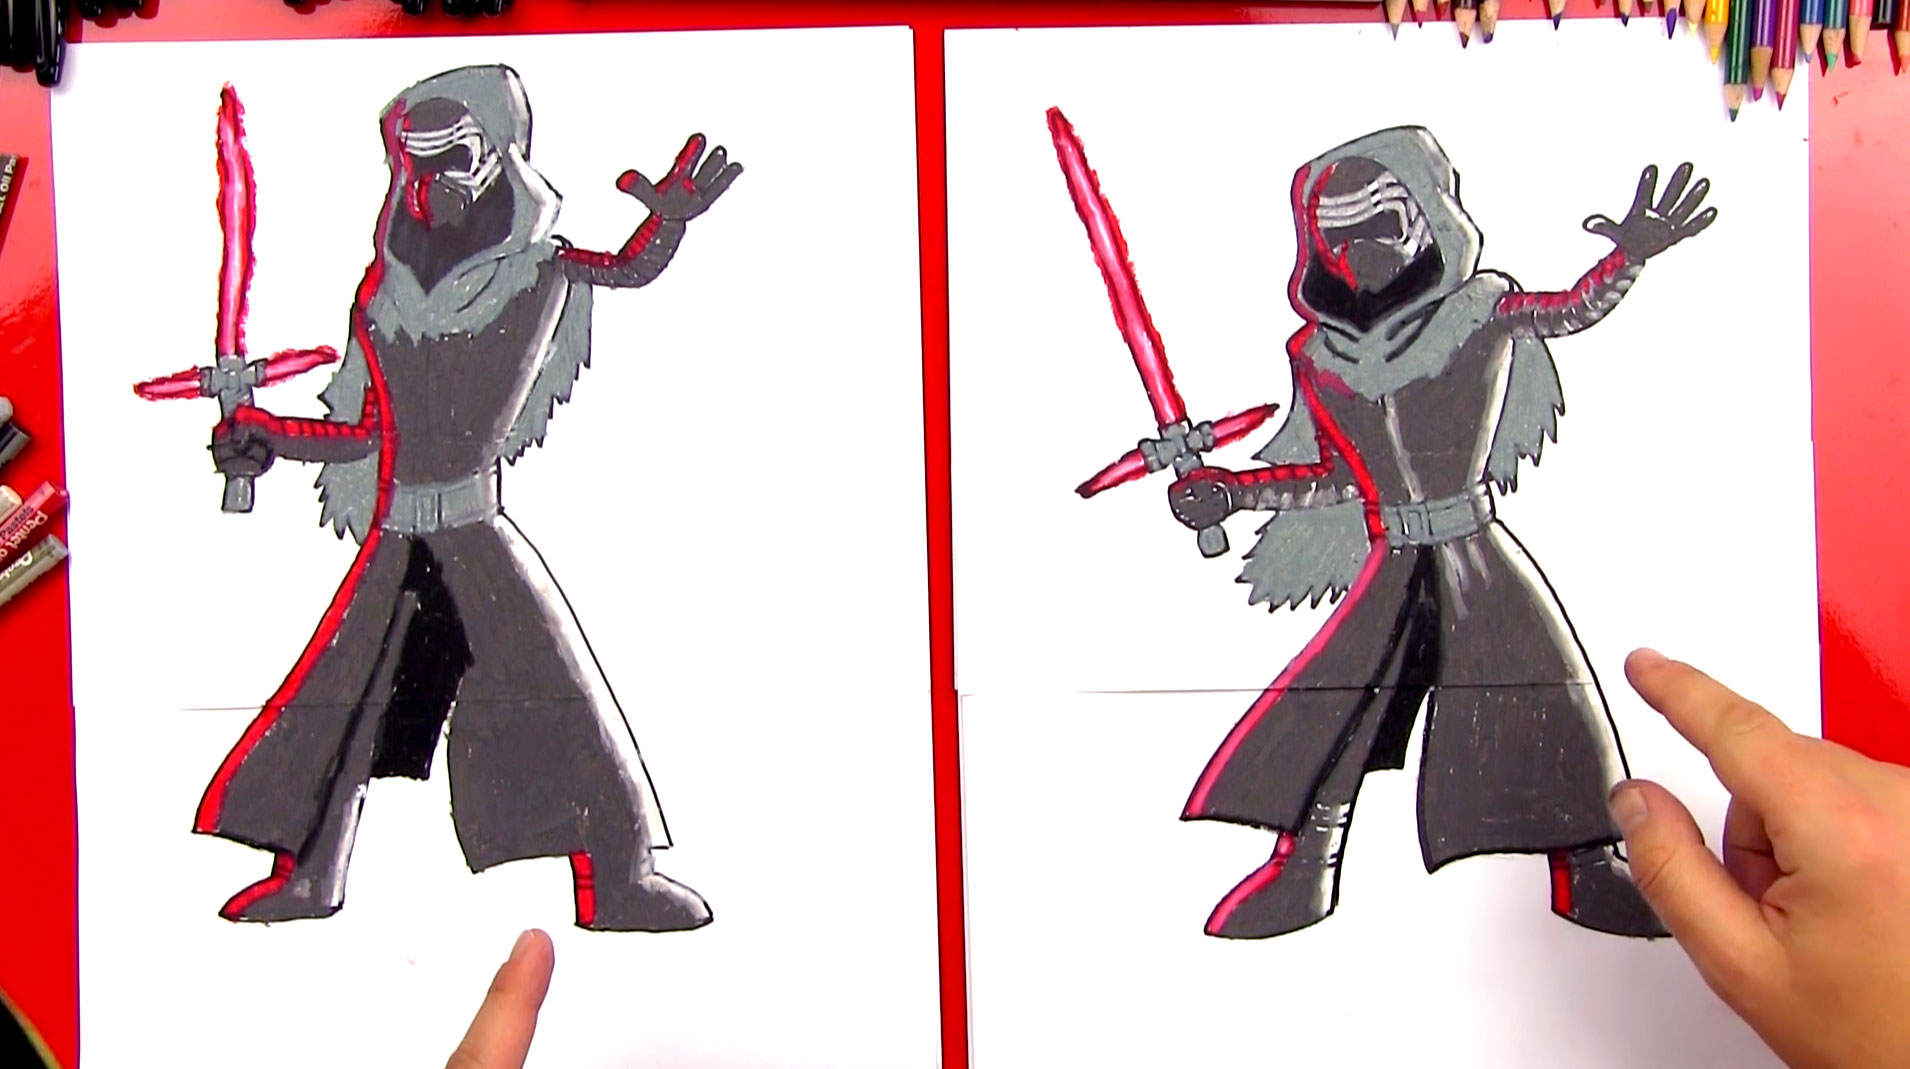 See family drawing stock video clips. How To Draw Kylo Ren From Star Wars - Art For Kids Hub